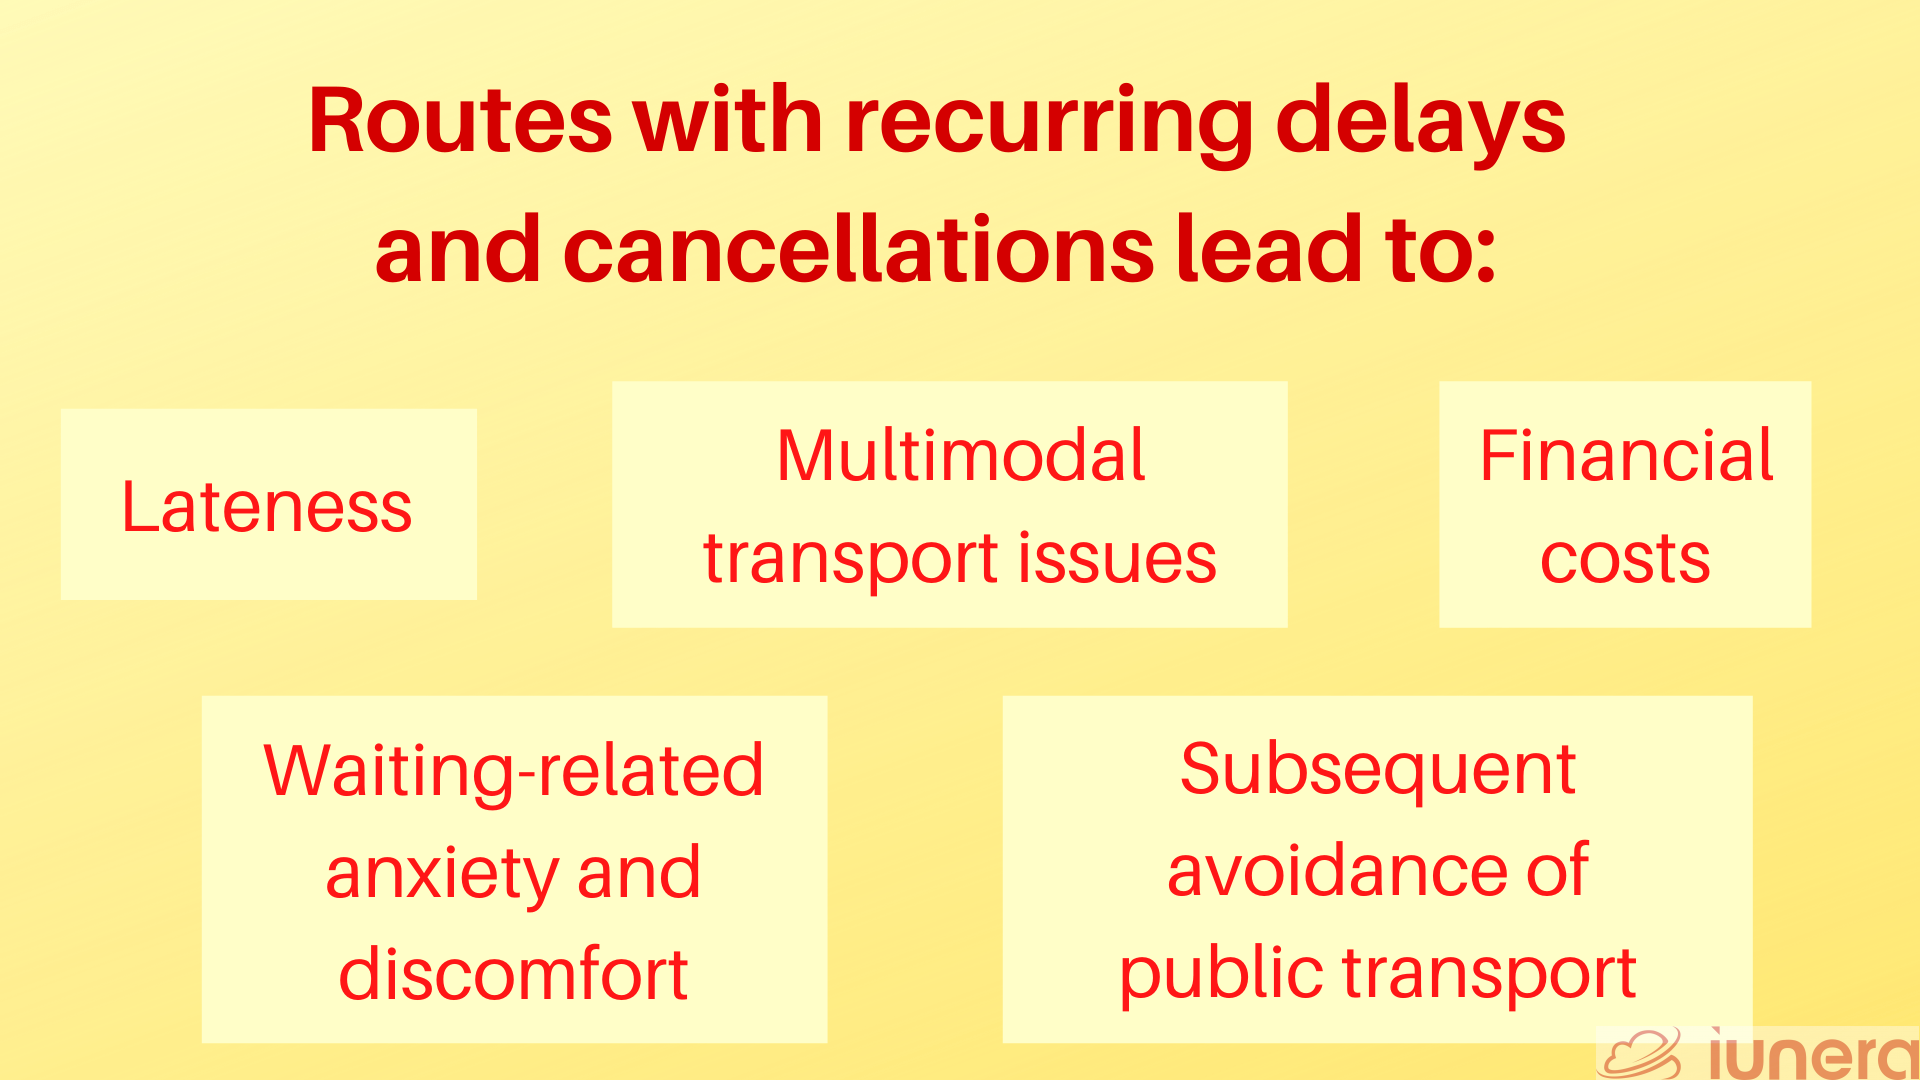 Routes with recurring delays and cancellations lead to lateness, waiting-related anxiety and discomfort, multimodal transport issues, financial costs and, worst of all, subsequent avoidance of public transport.